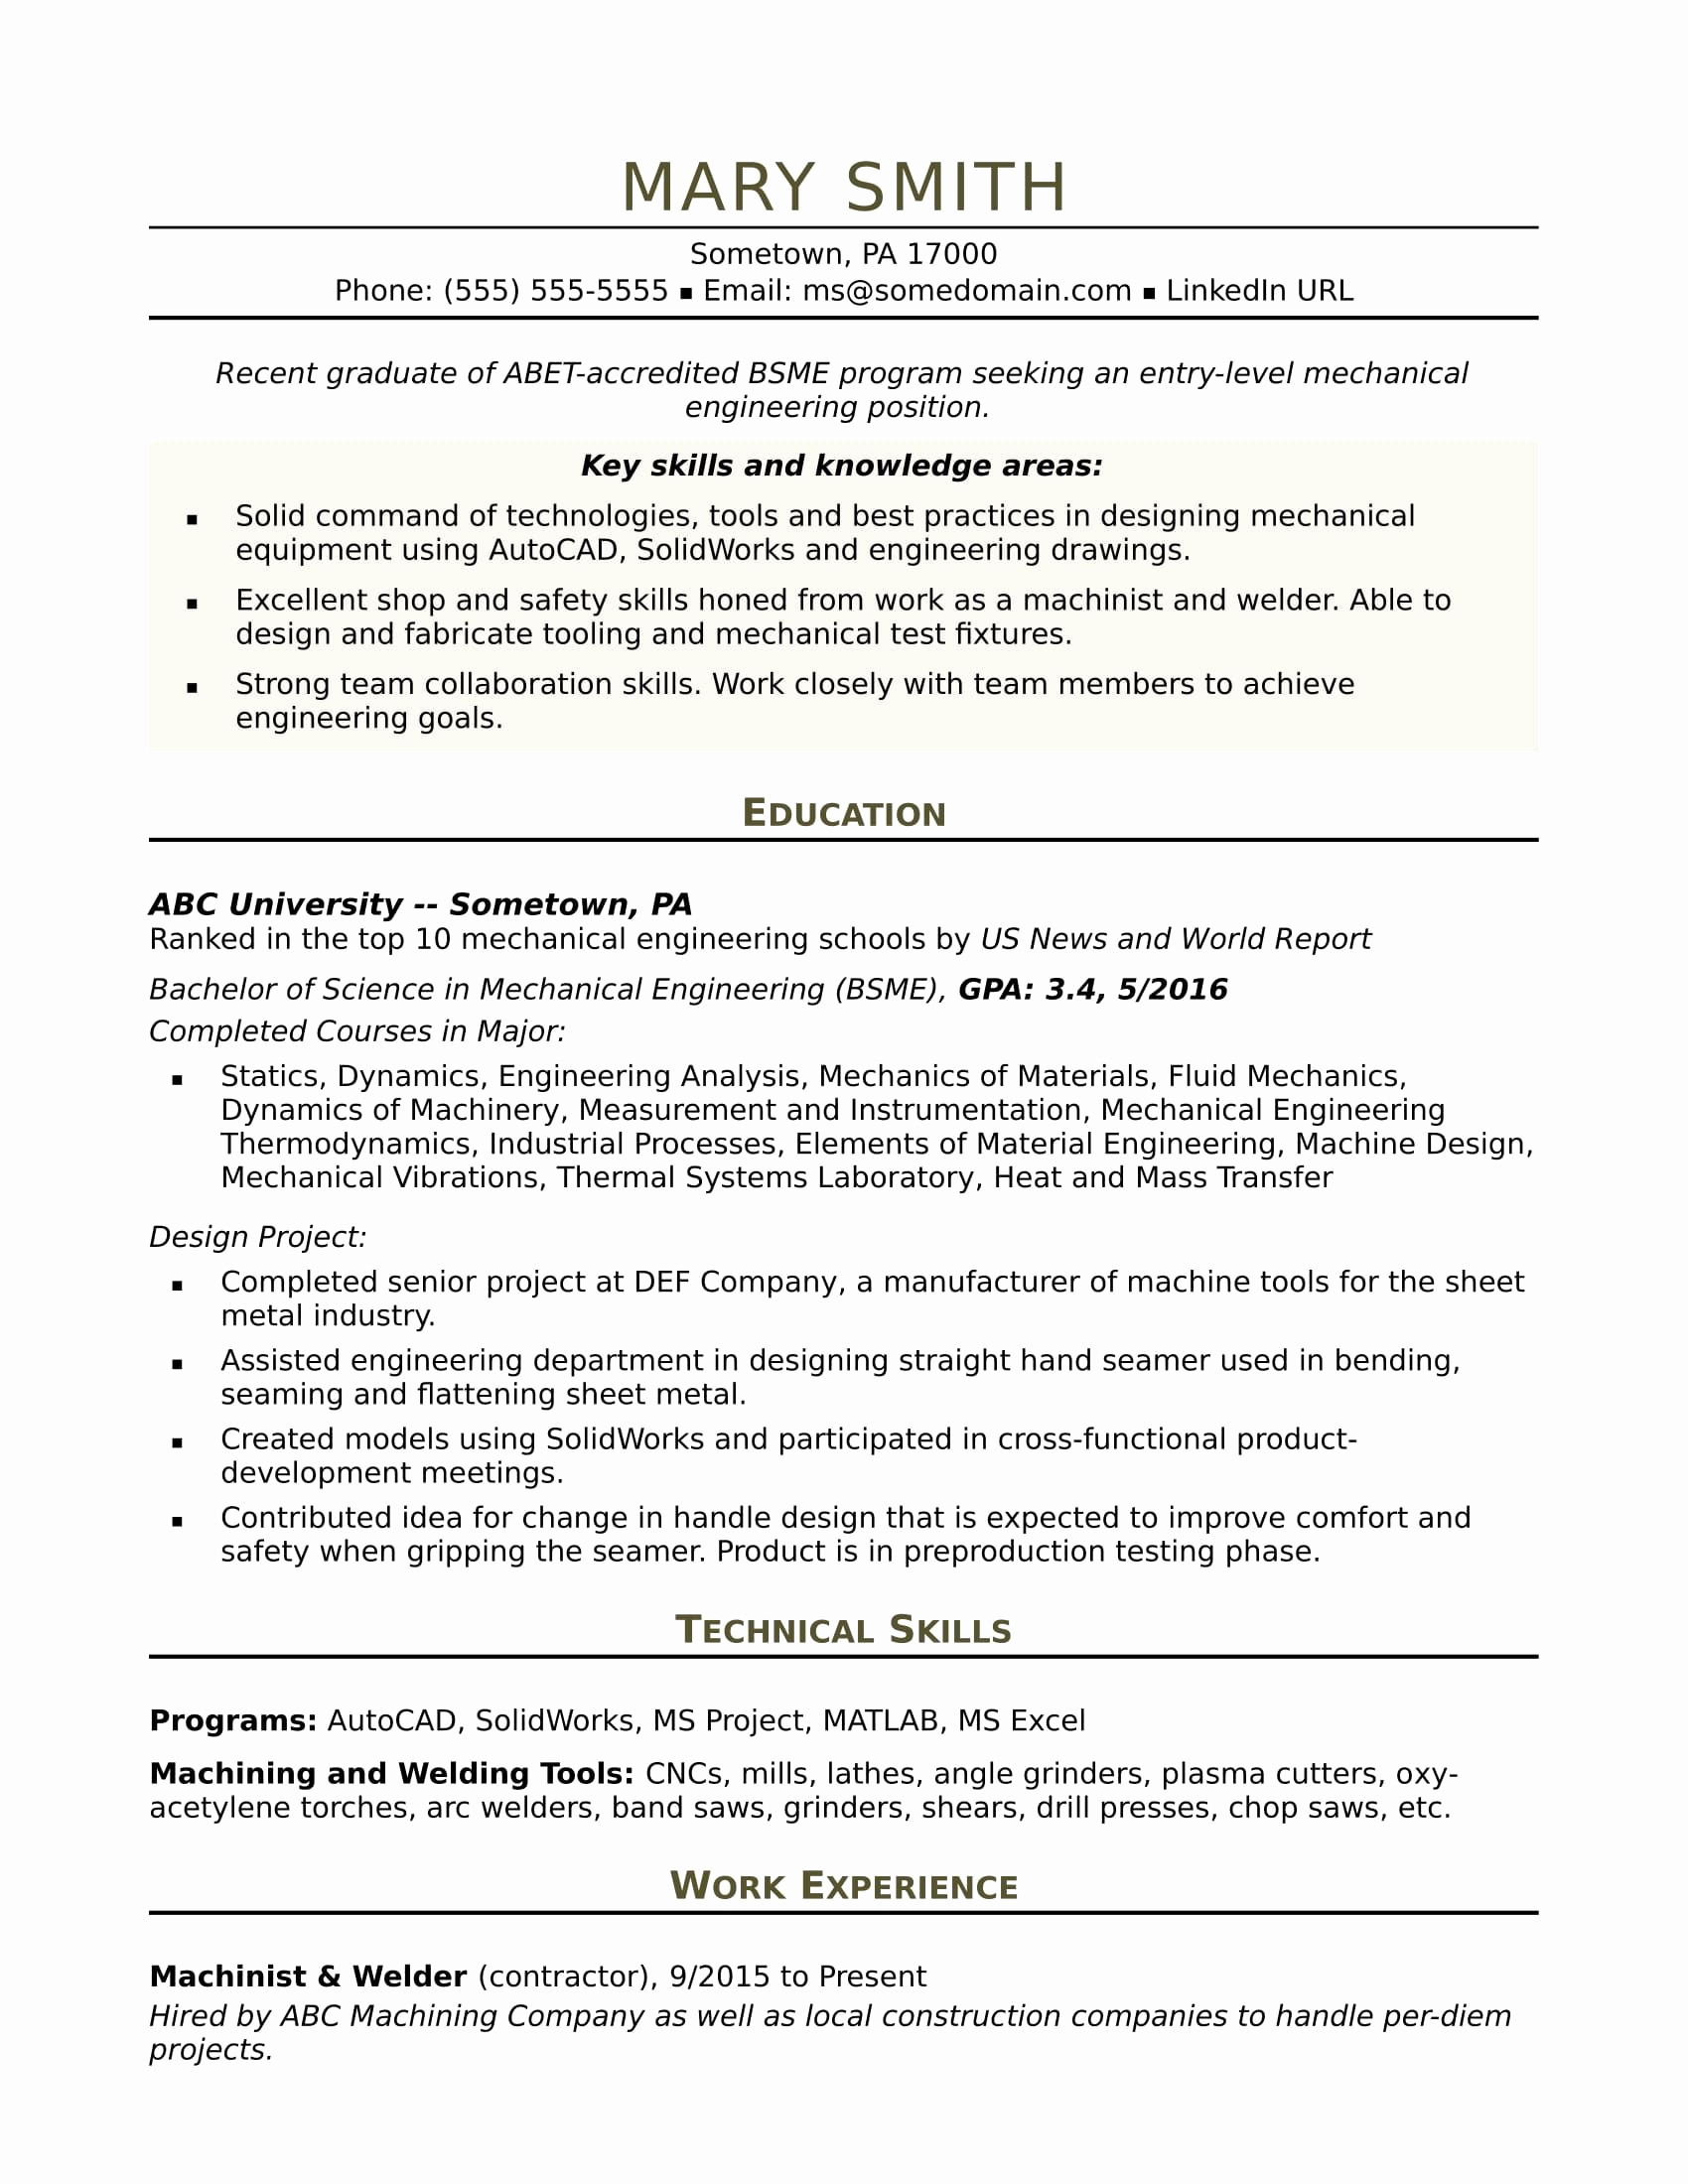 Mechanical Engineer Resume Sample Lovely Sample Resume for An Entry Level Mechanical Engineer